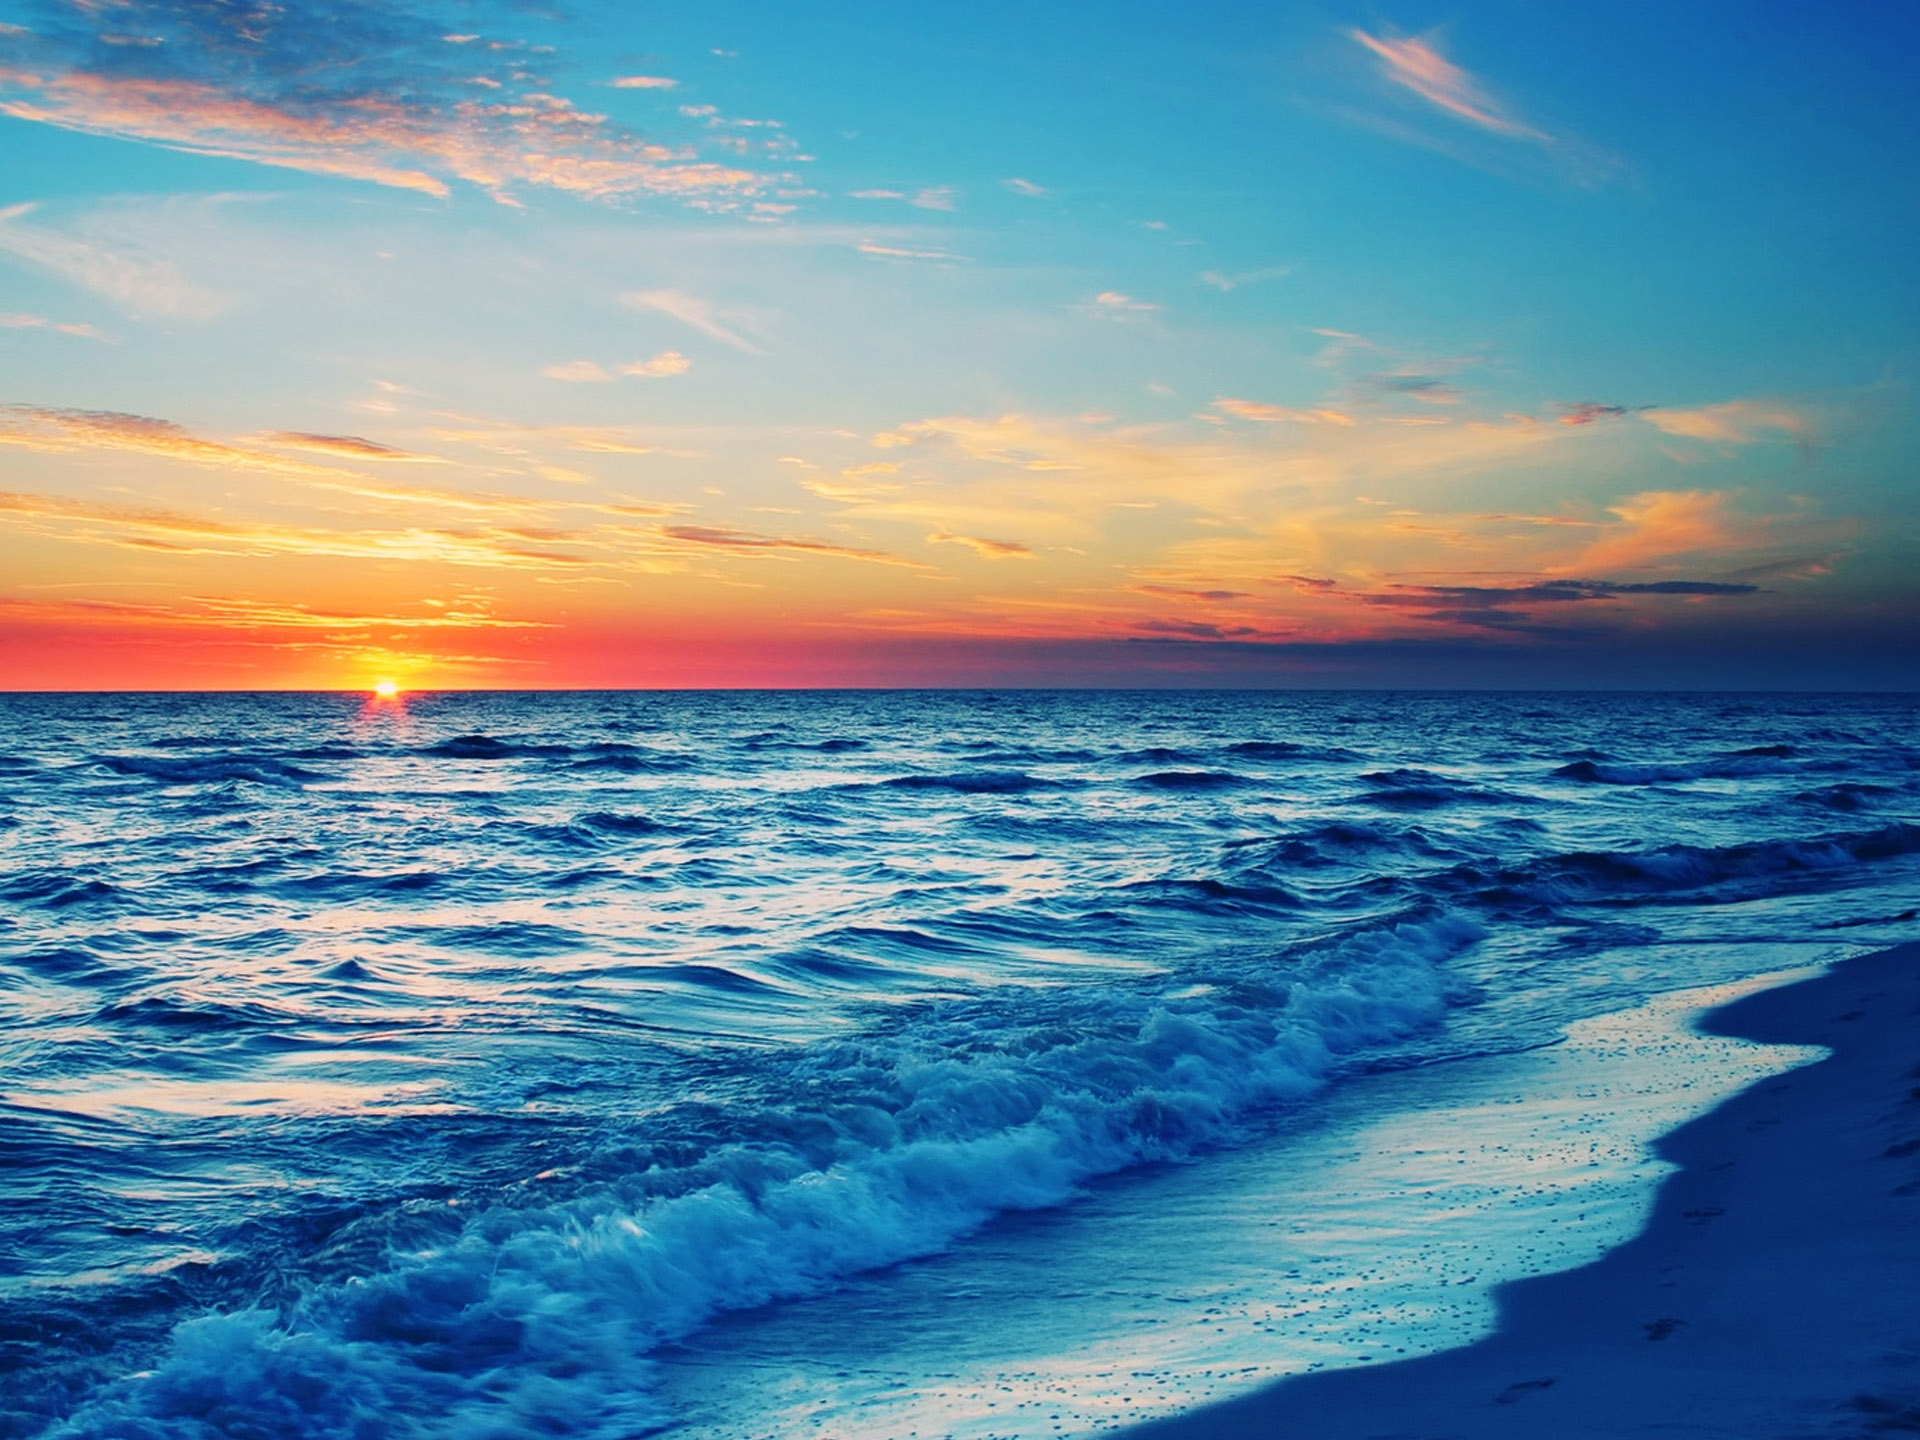 Stunning Ocean Sunset Wallpaper 35977 1920x1440 Px